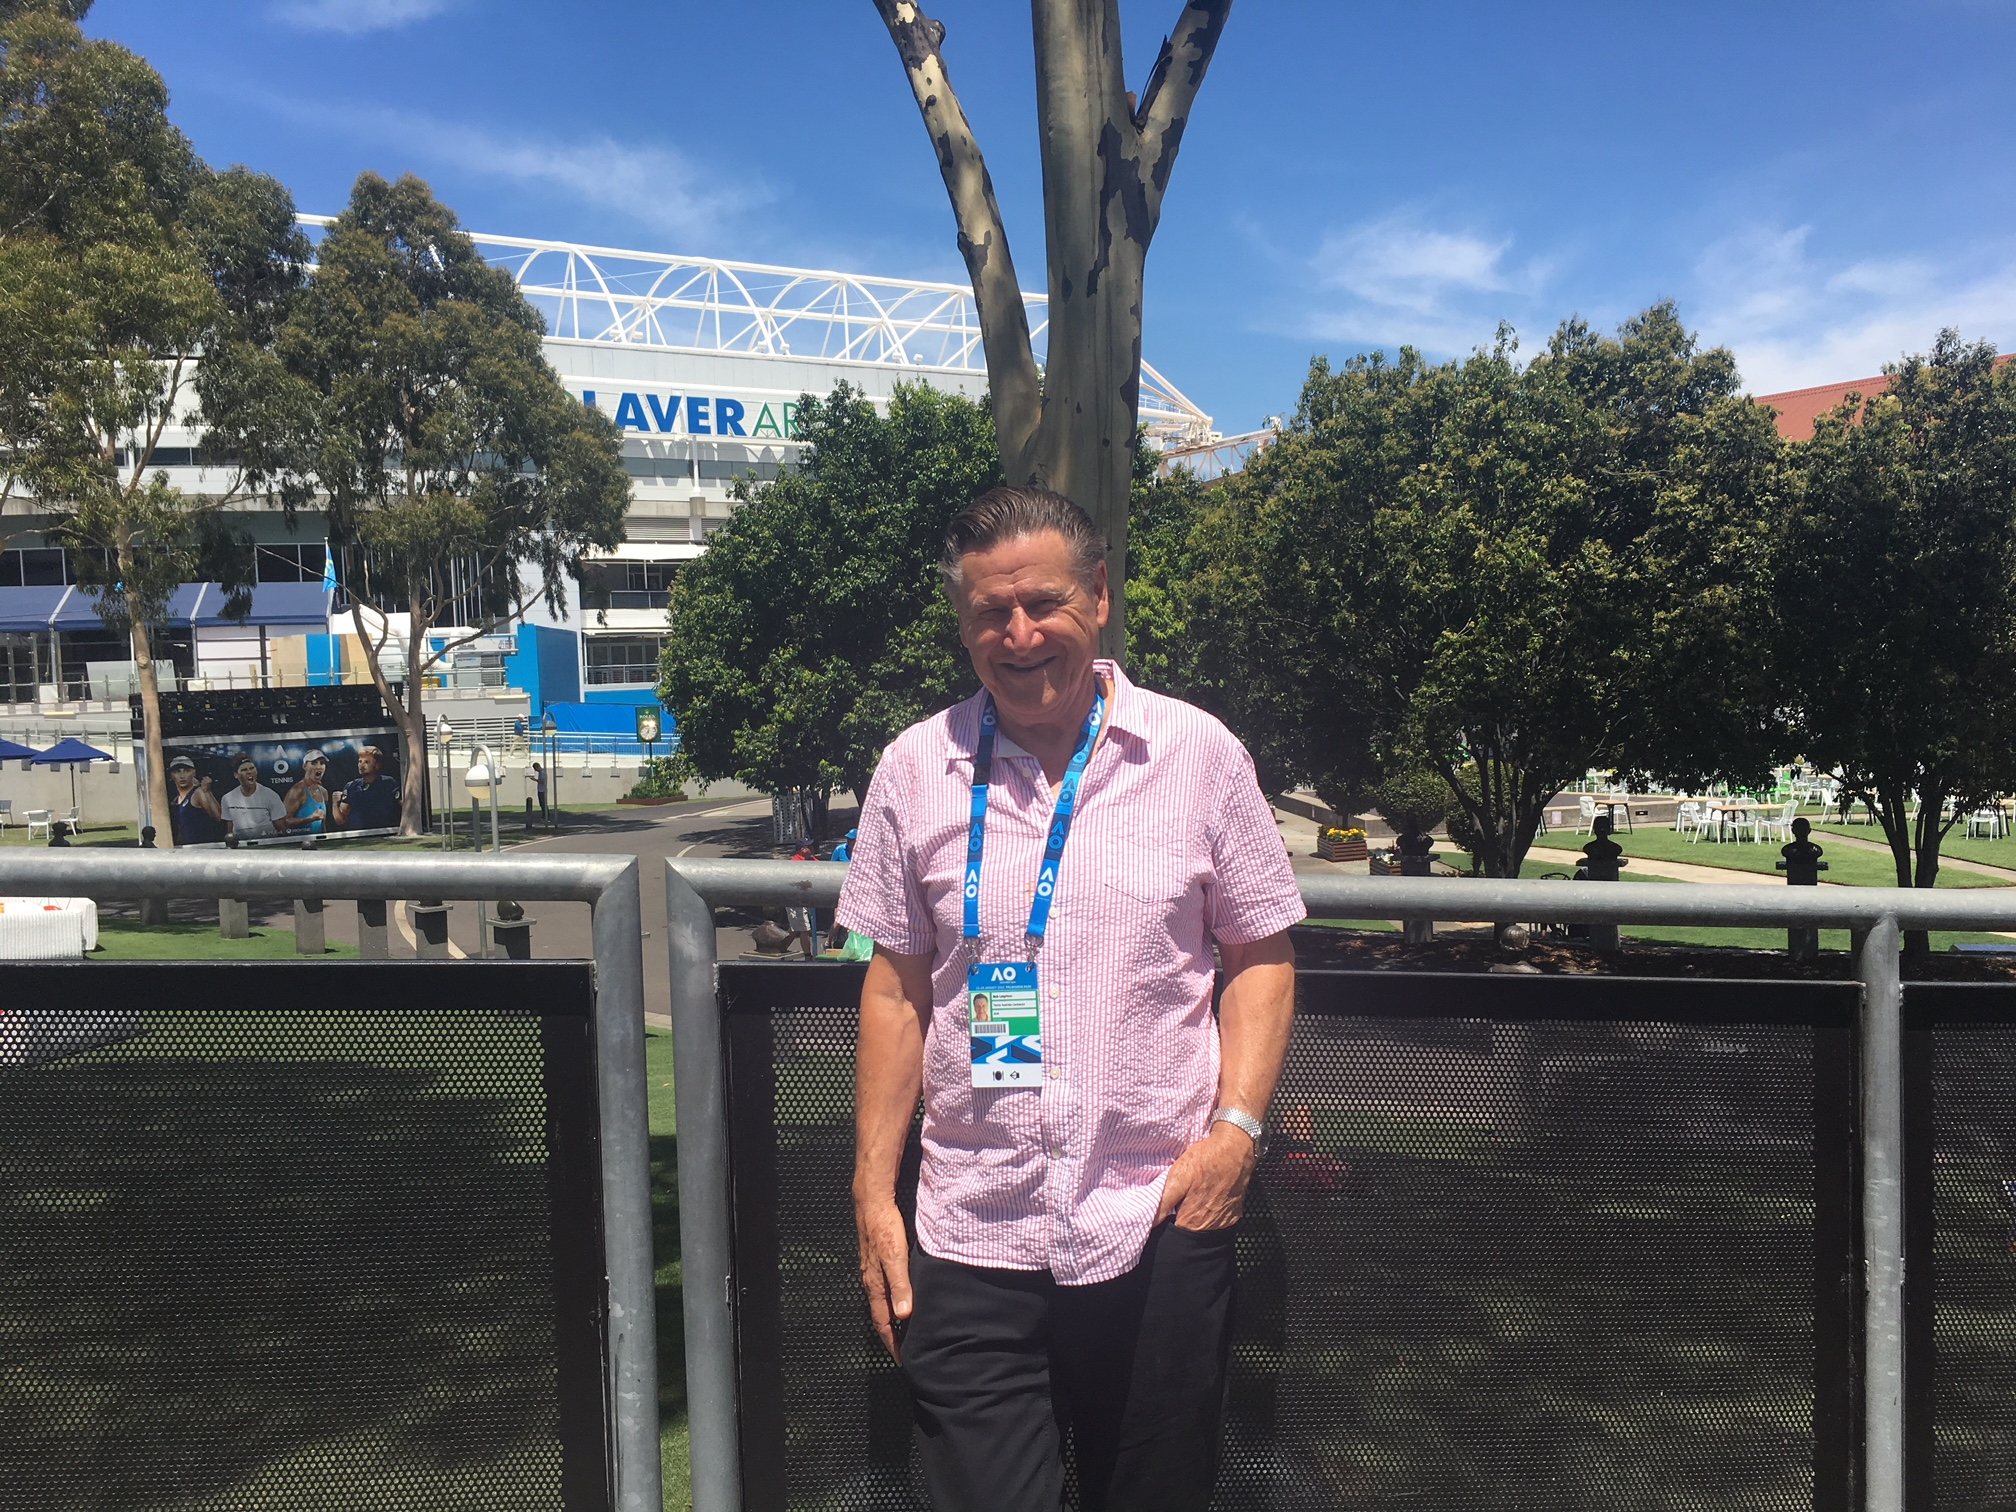 Image: Bob Leighton, Australian Open meteorologist, outside the Rod Laver Arena.